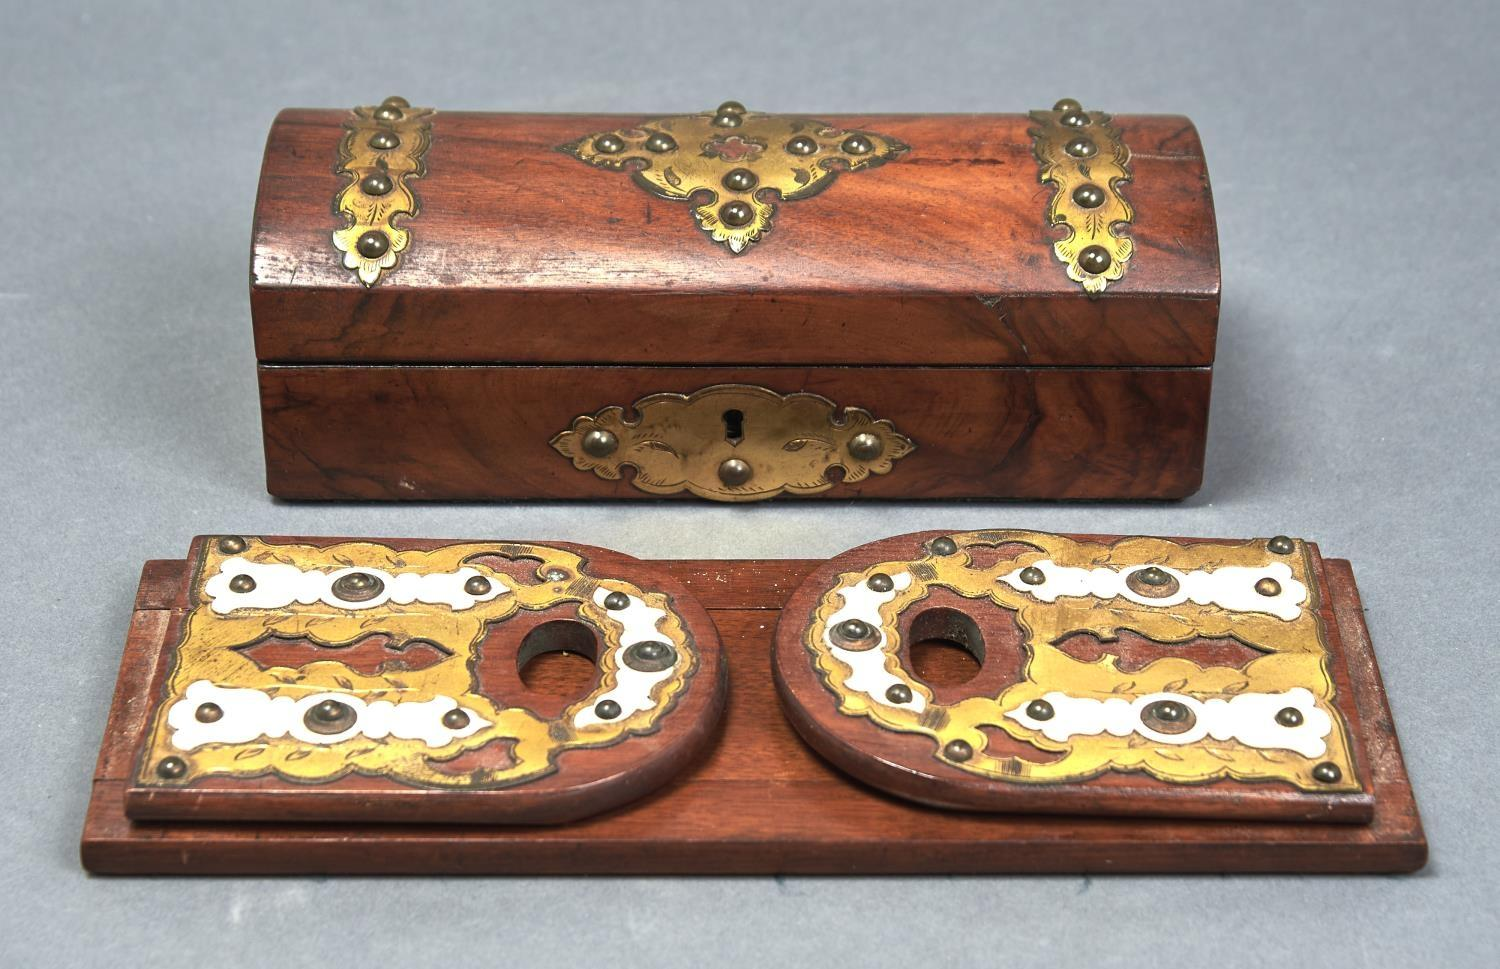 A VICTORIAN WALNUT GLOVE BOX AND A SIMILAR CONTEMPORARY BOOKSLIDE, C1870, APPLIED WITH SHAPED AND